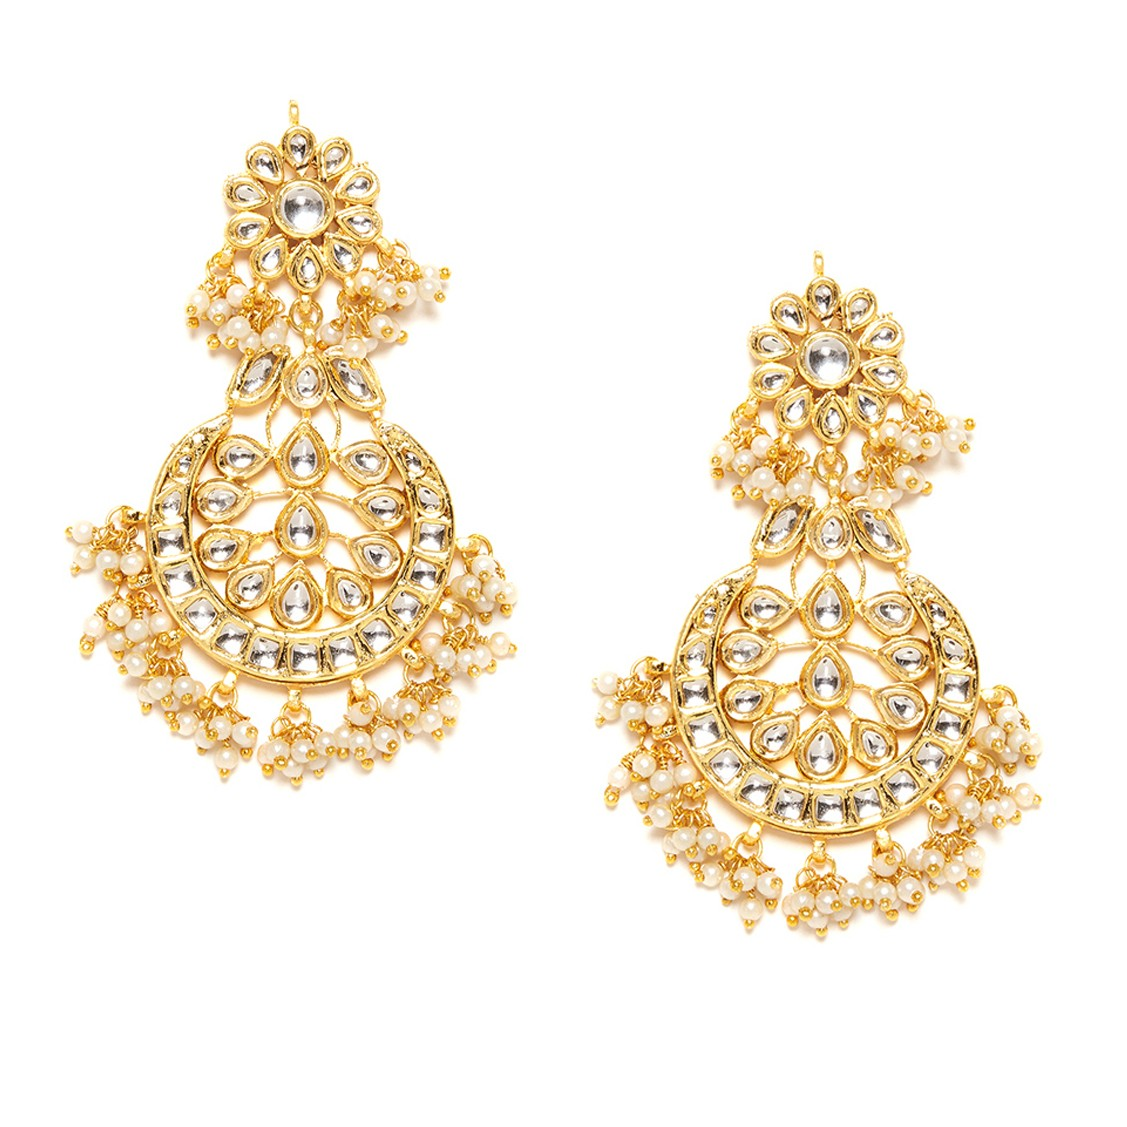 Kundan Stone Earrings Flower Design Golden Color For Woman & Girls